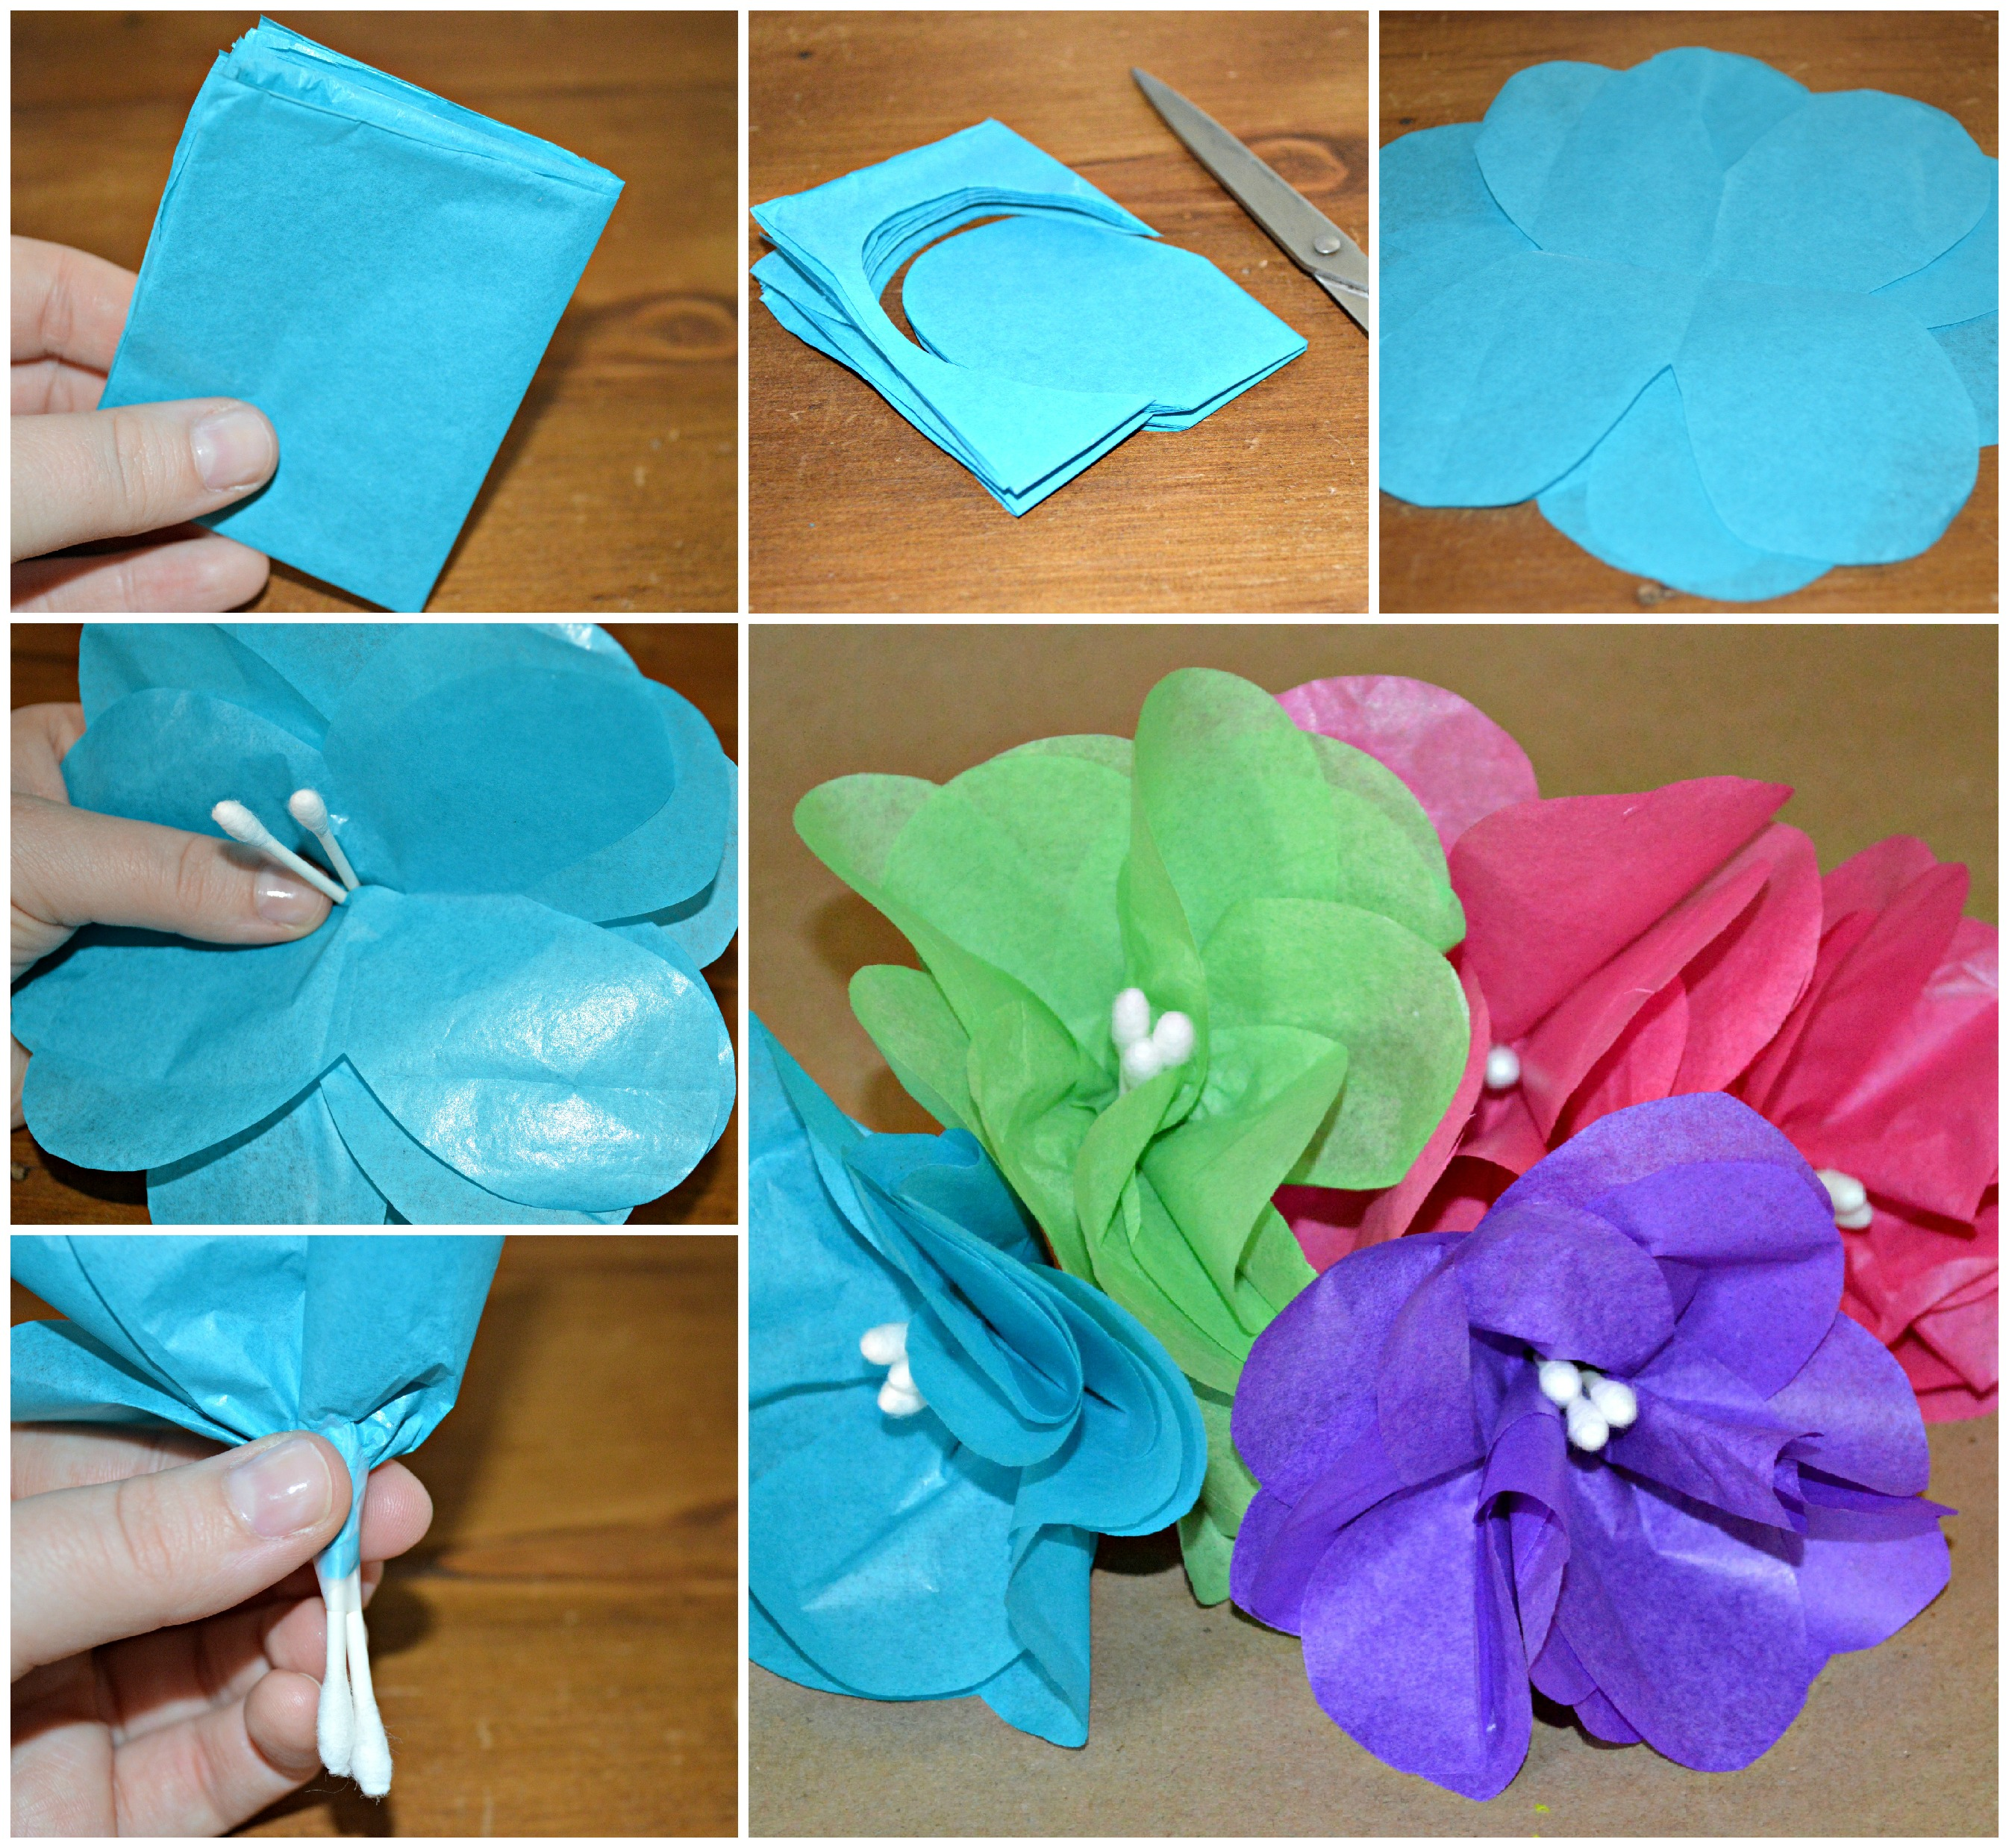 How to make tissue paper flowers martha stewart comousar how to make tissue paper flowers martha stewart to make the tissue paper mightylinksfo